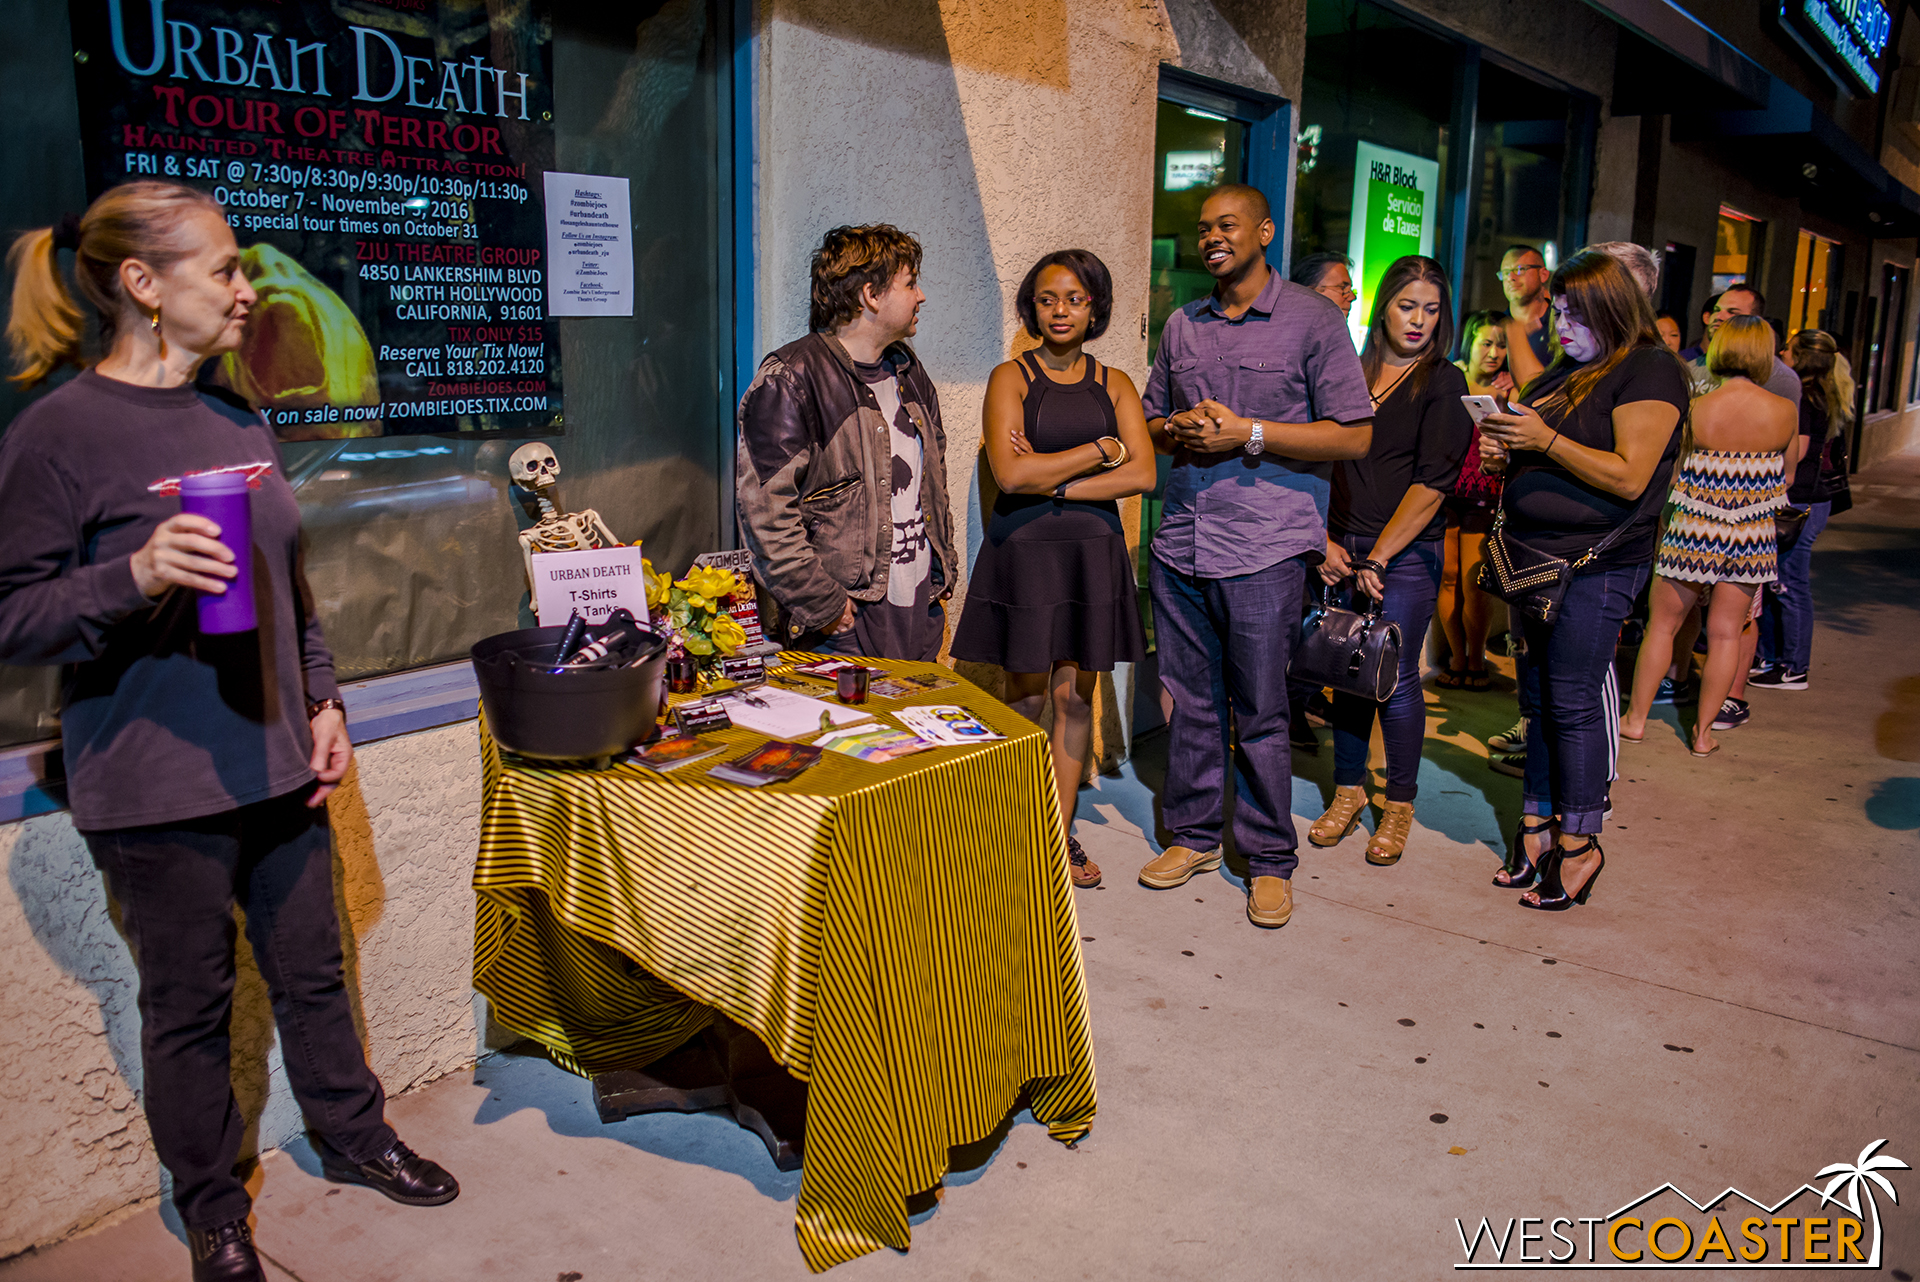 Guests line up before showtime outside Zombie Joe's Underground Theatre.